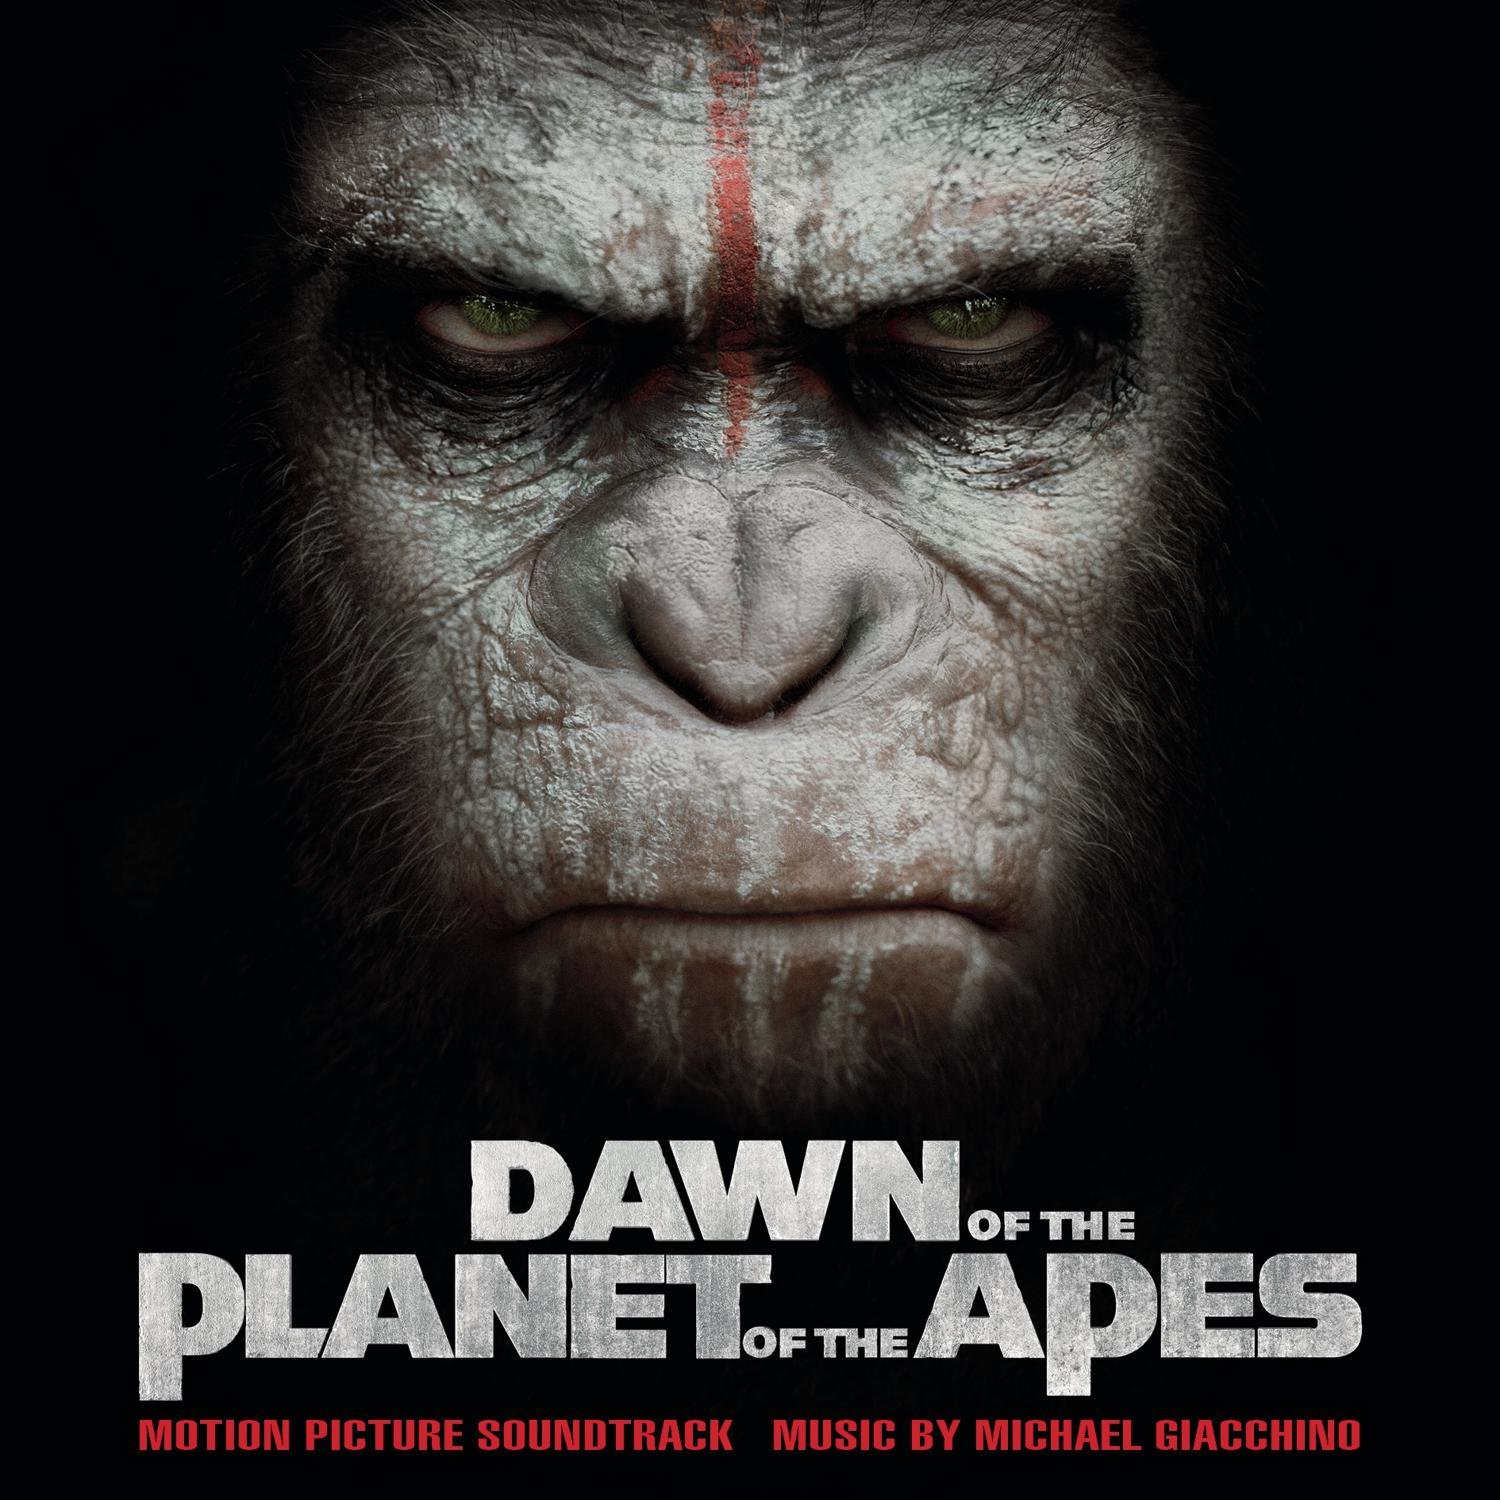 Dawn of the Planet of the Apes (Soundtrack Album)